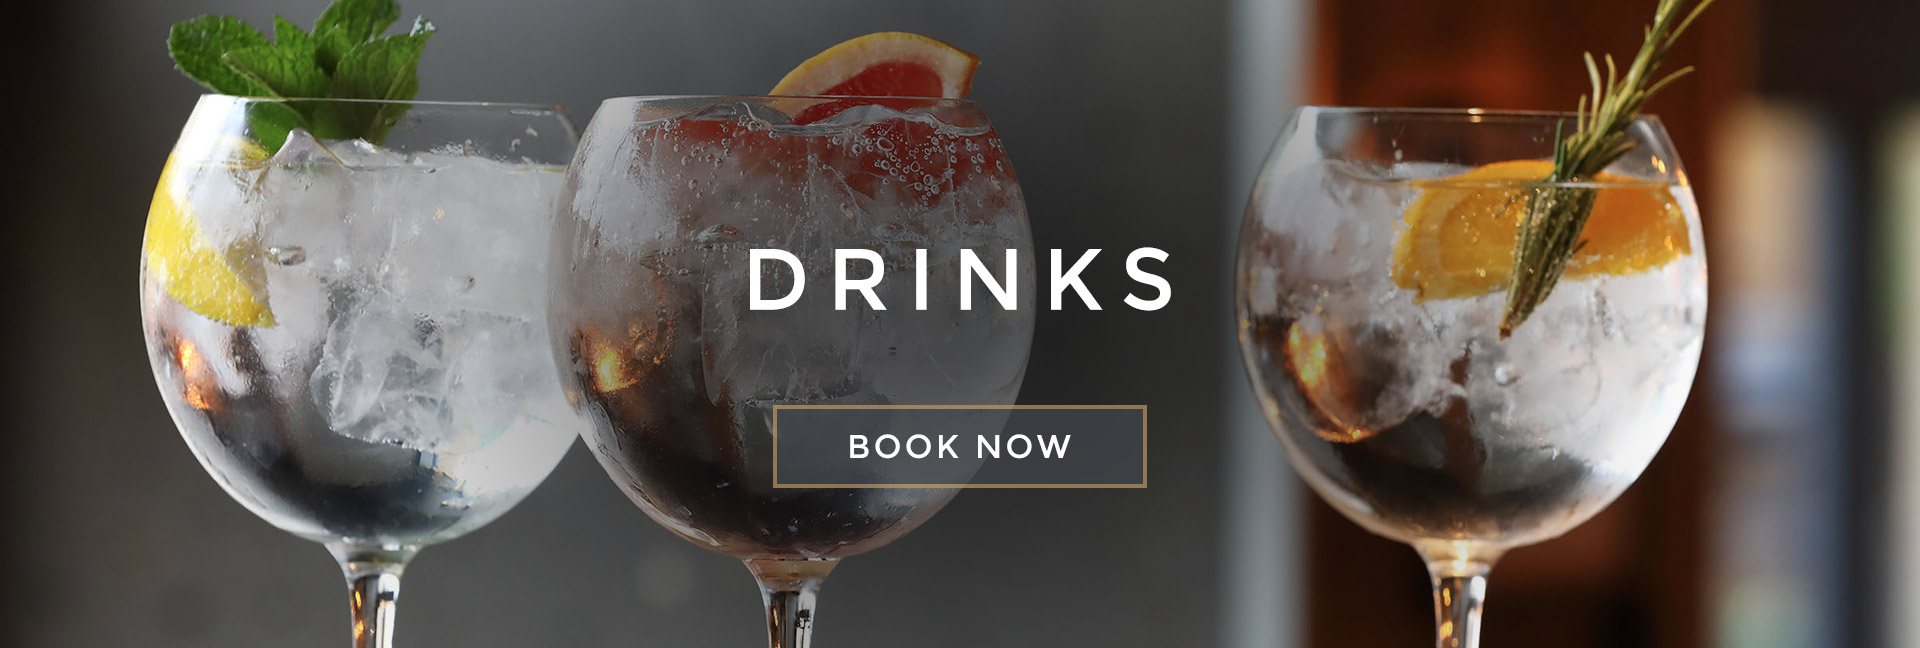 Drinks at All Bar One Wimbledon - Book your table